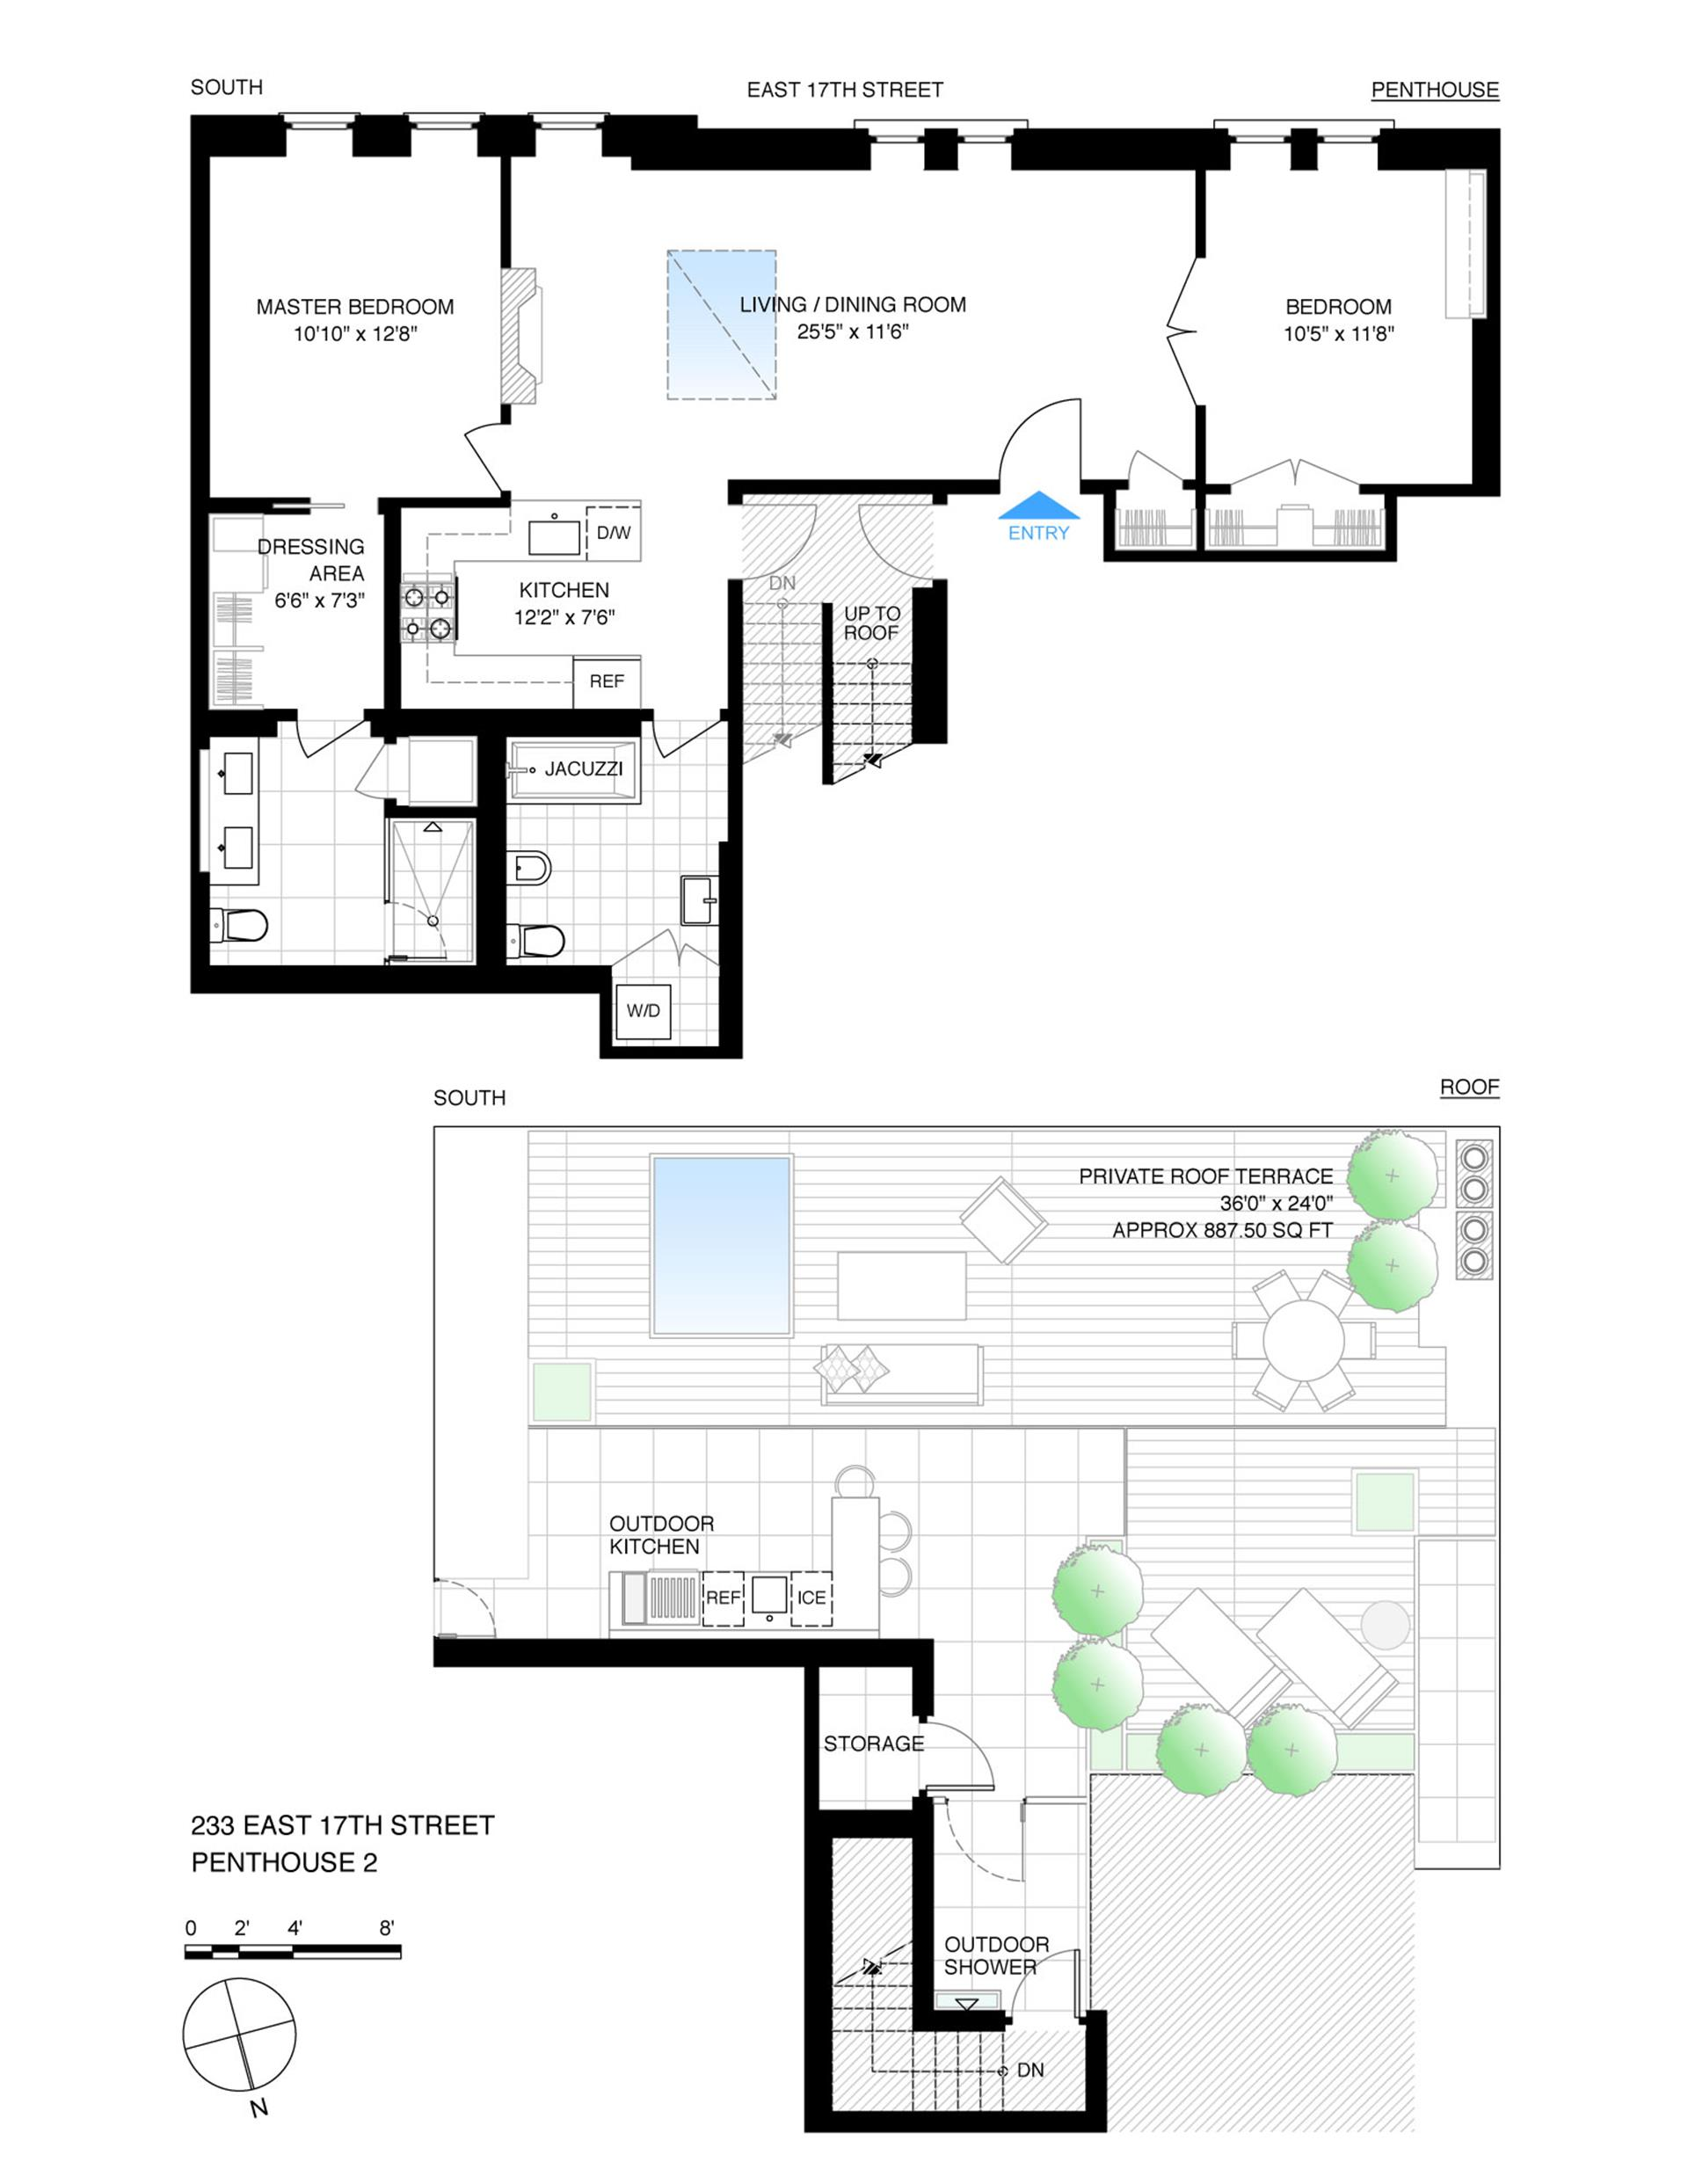 Floor plan of Landmark 17, 233 East 17th St, PH2 - Gramercy - Union Square, New York